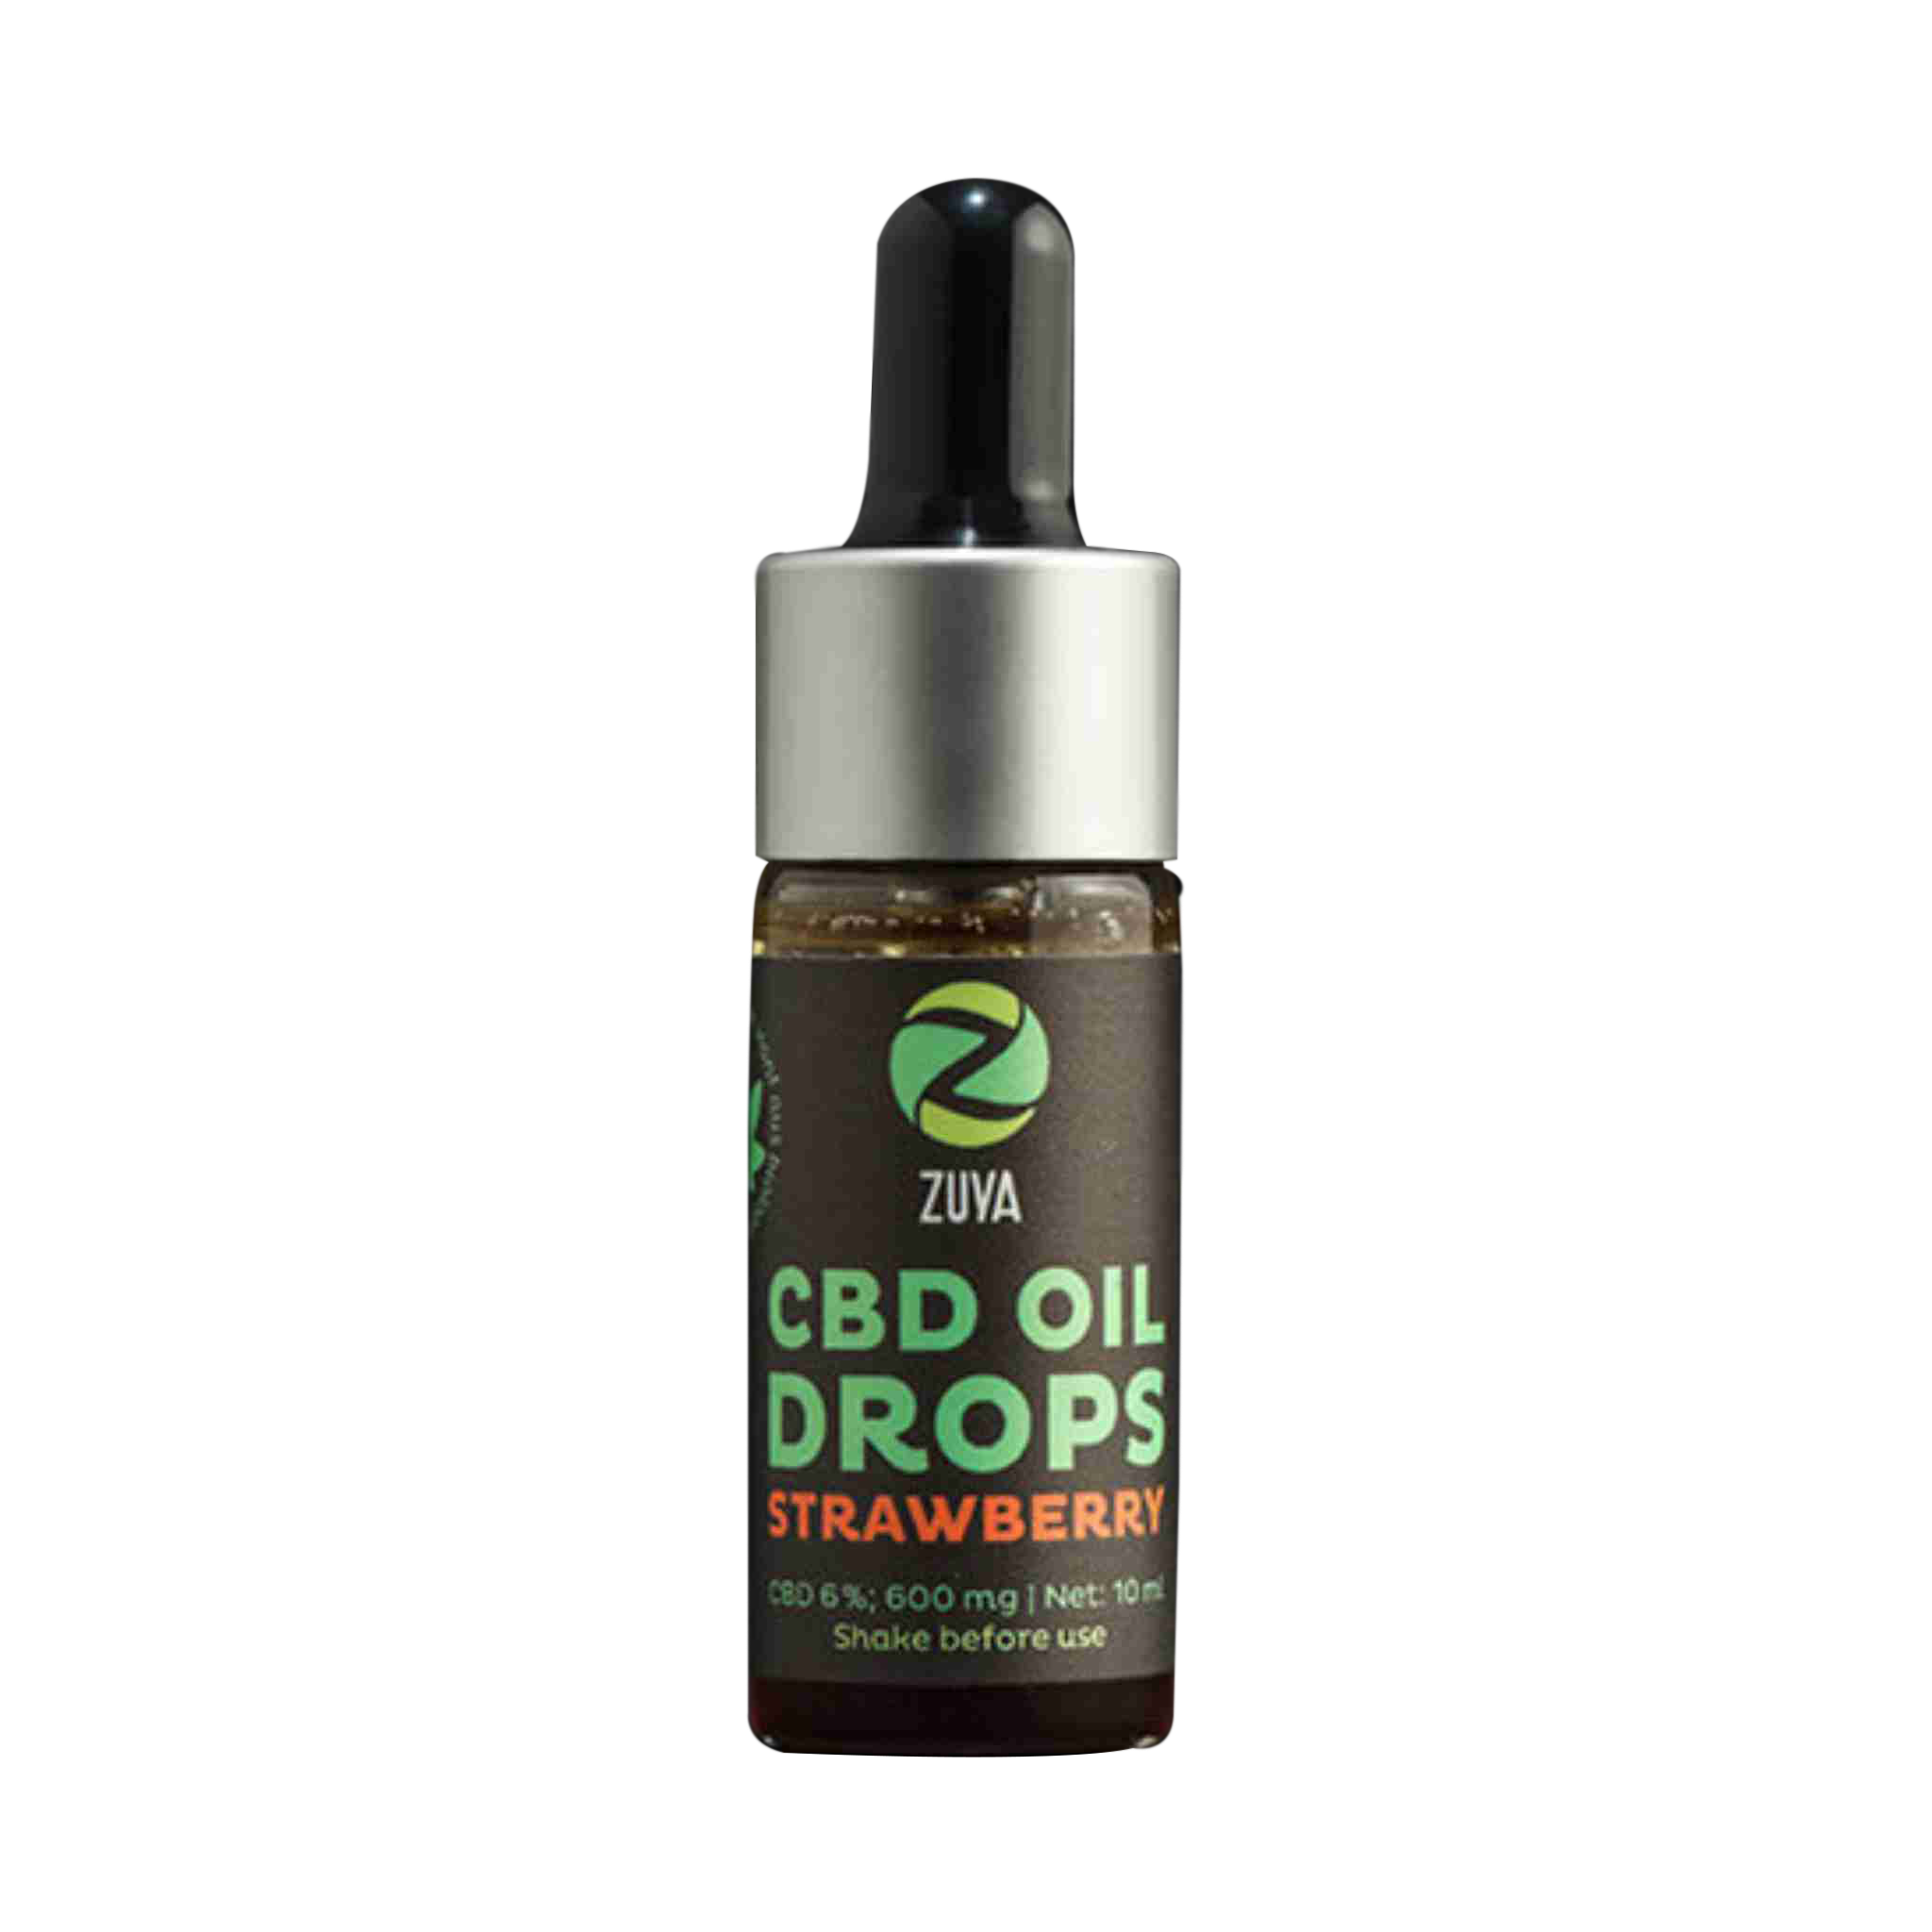 Strawberry 12% - Full-spectrum CBD Oil (1200mg)